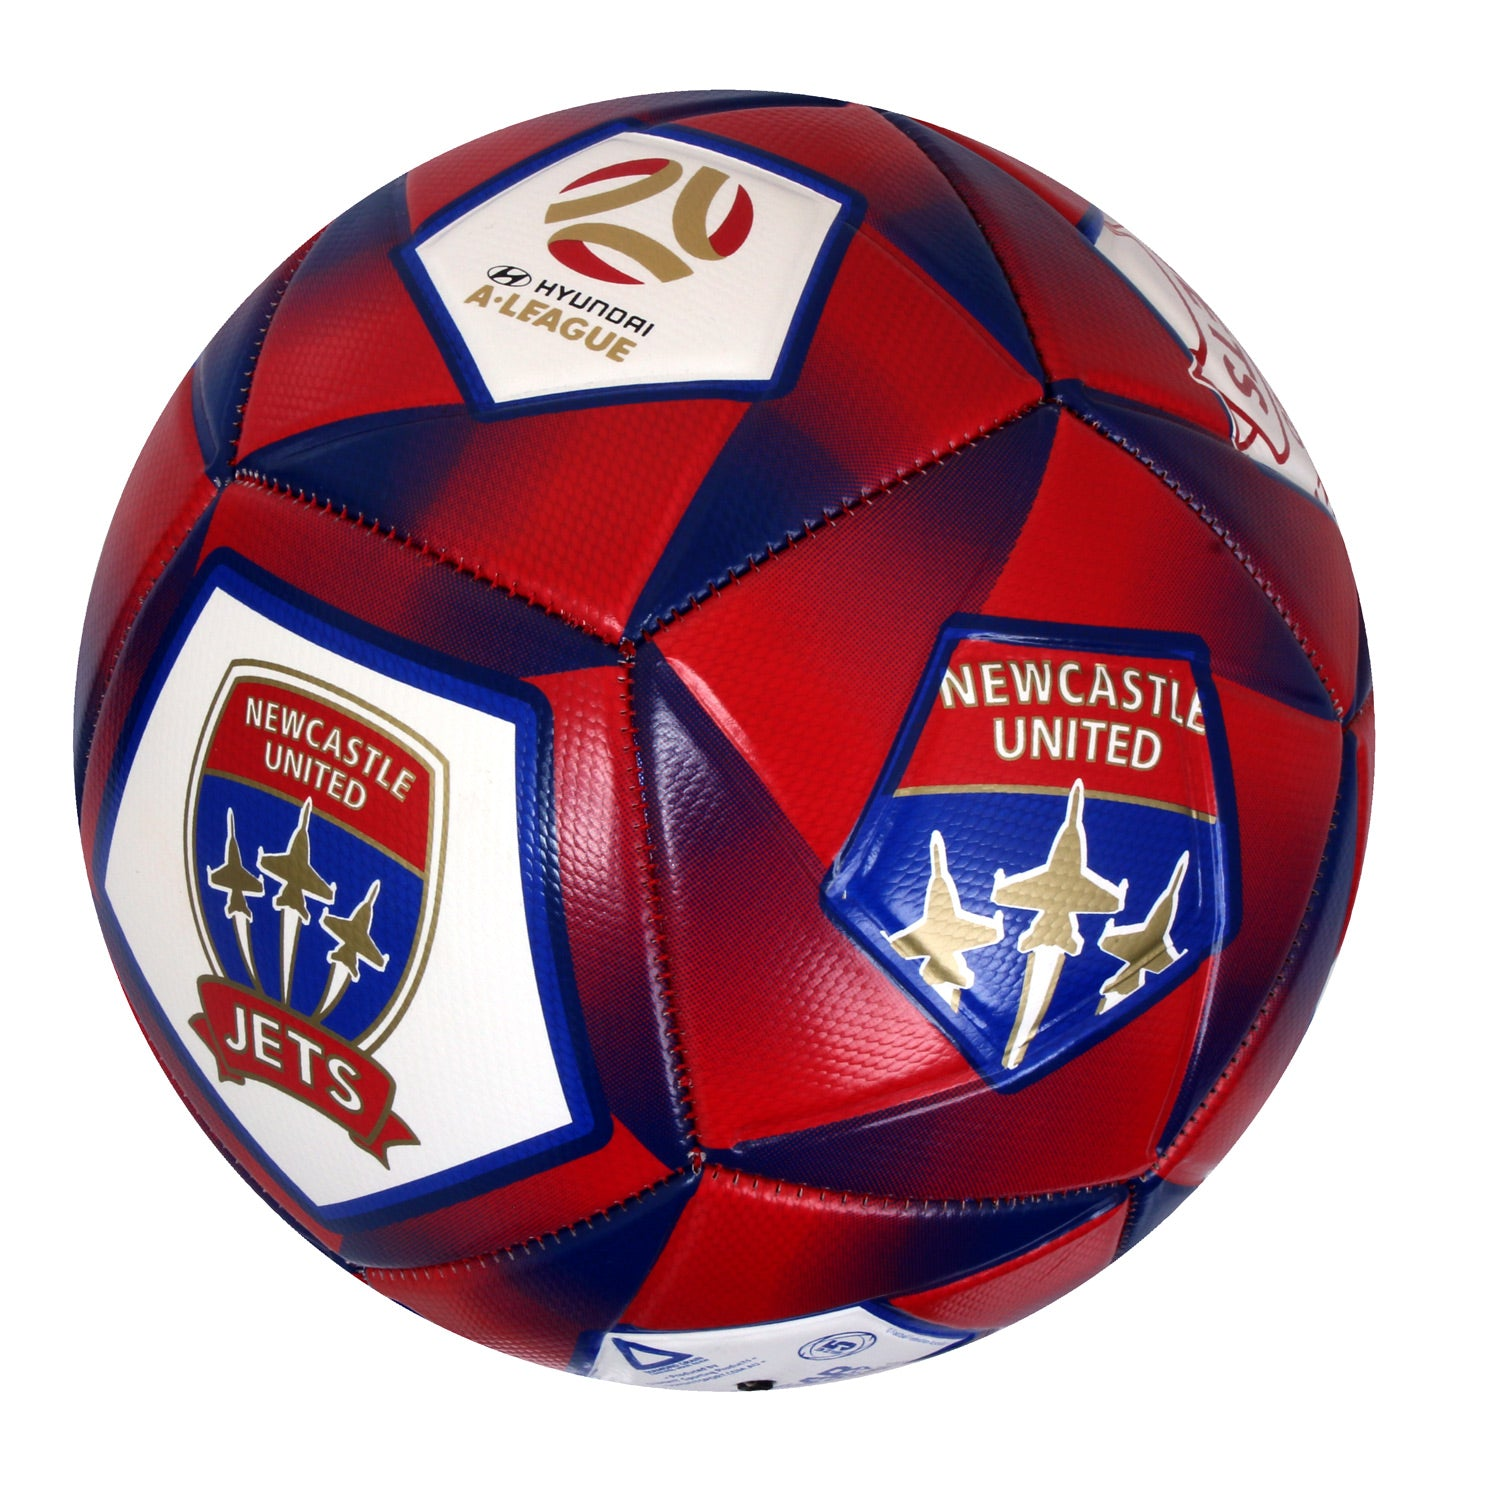 Newcastle Jets Soccer Ball 840a04162482